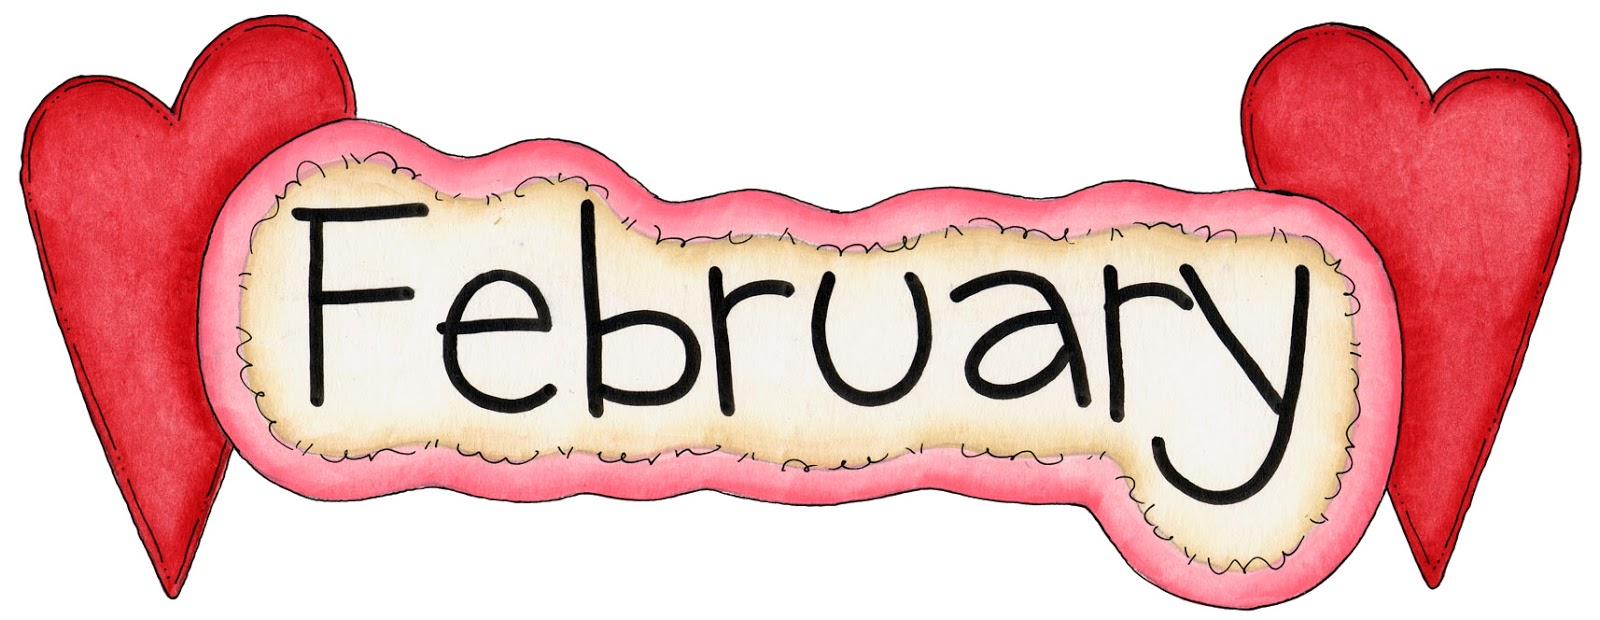 Calendar free download best. January clipart important